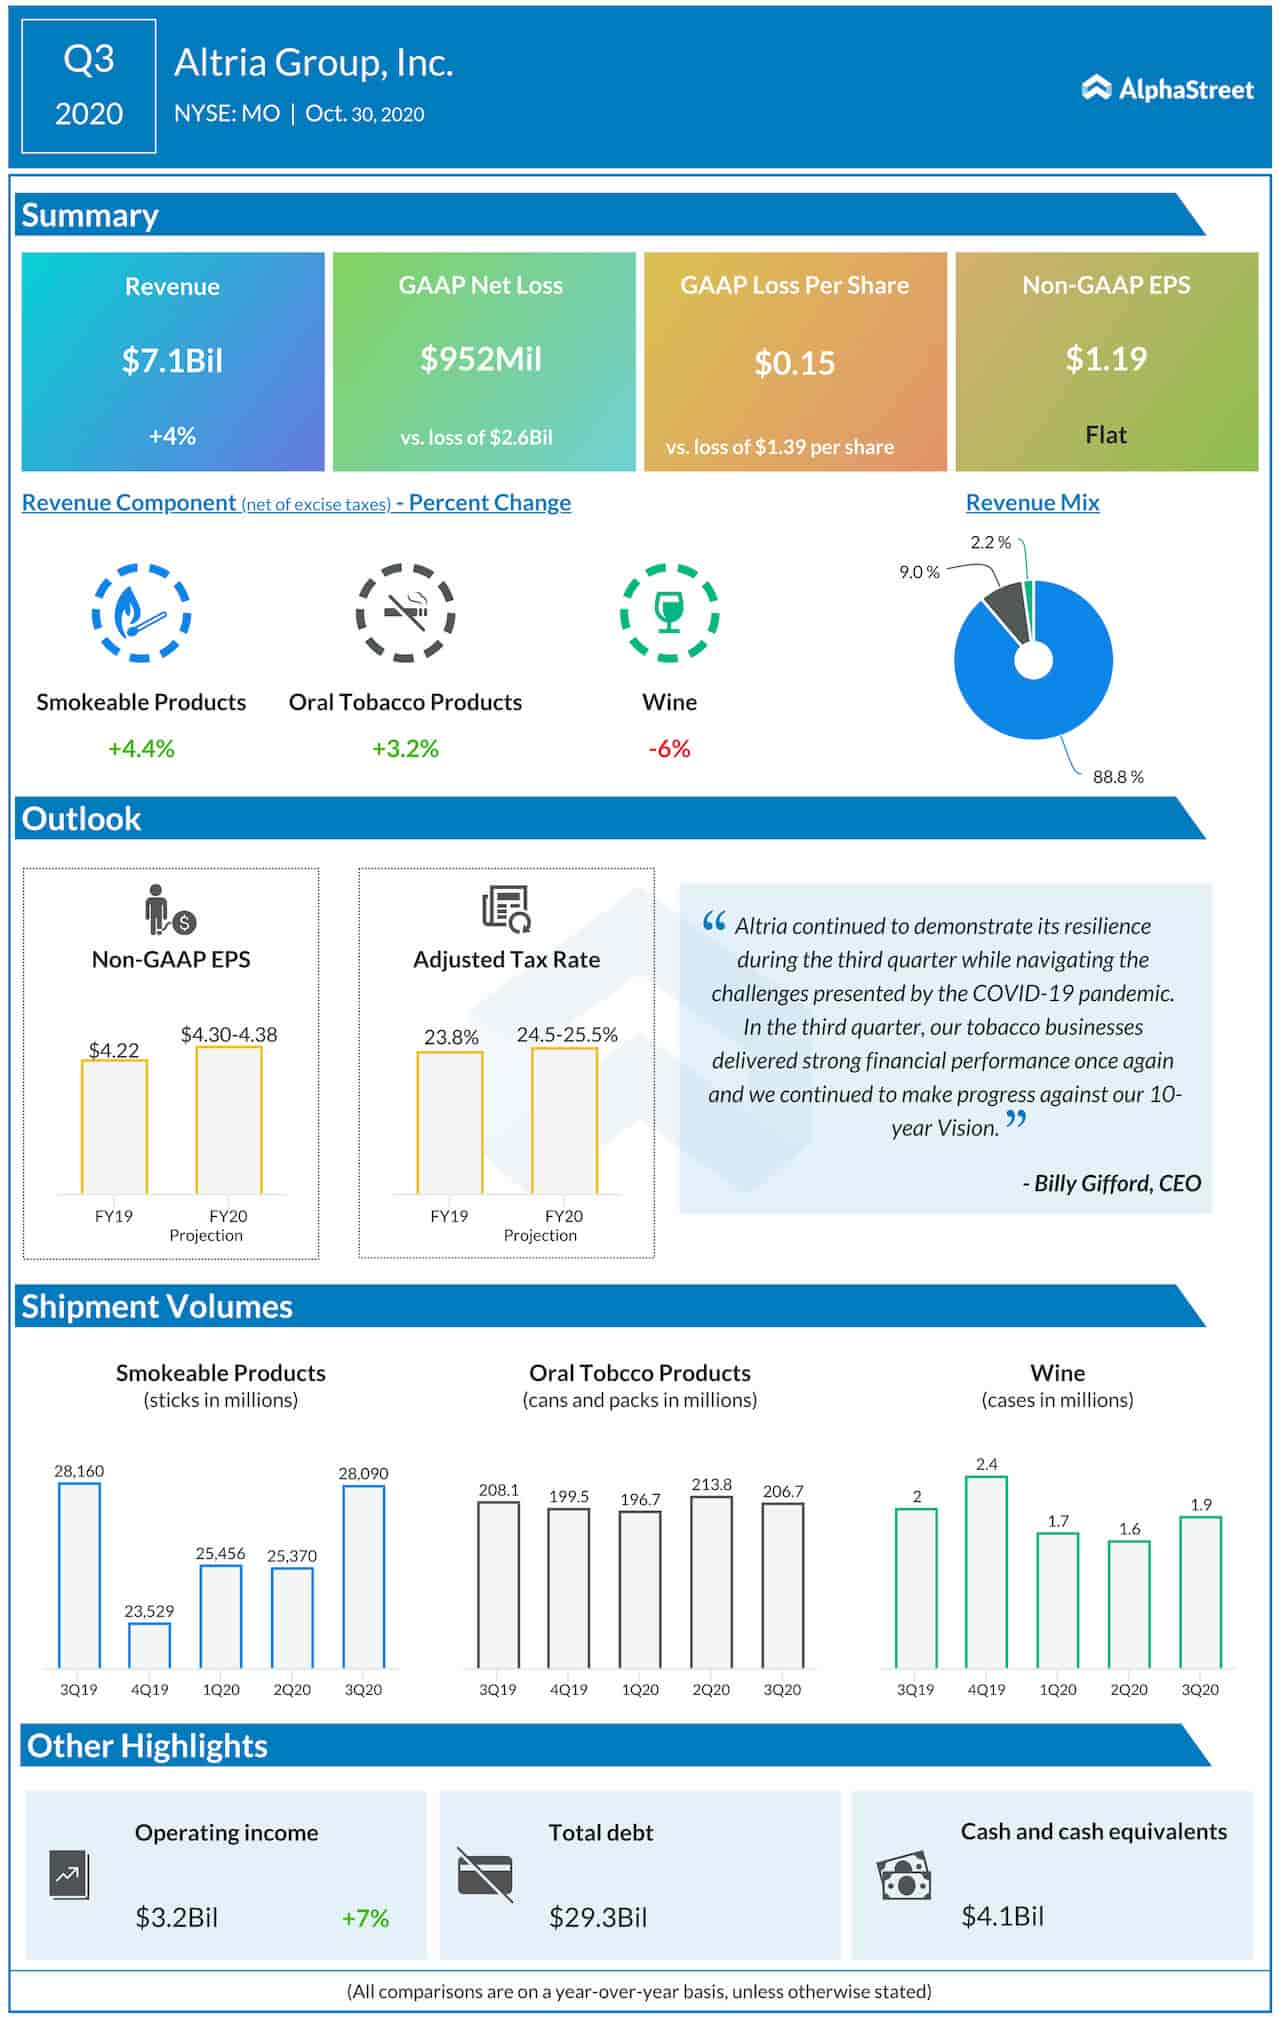 Altria Group's Q3 earnings infographic